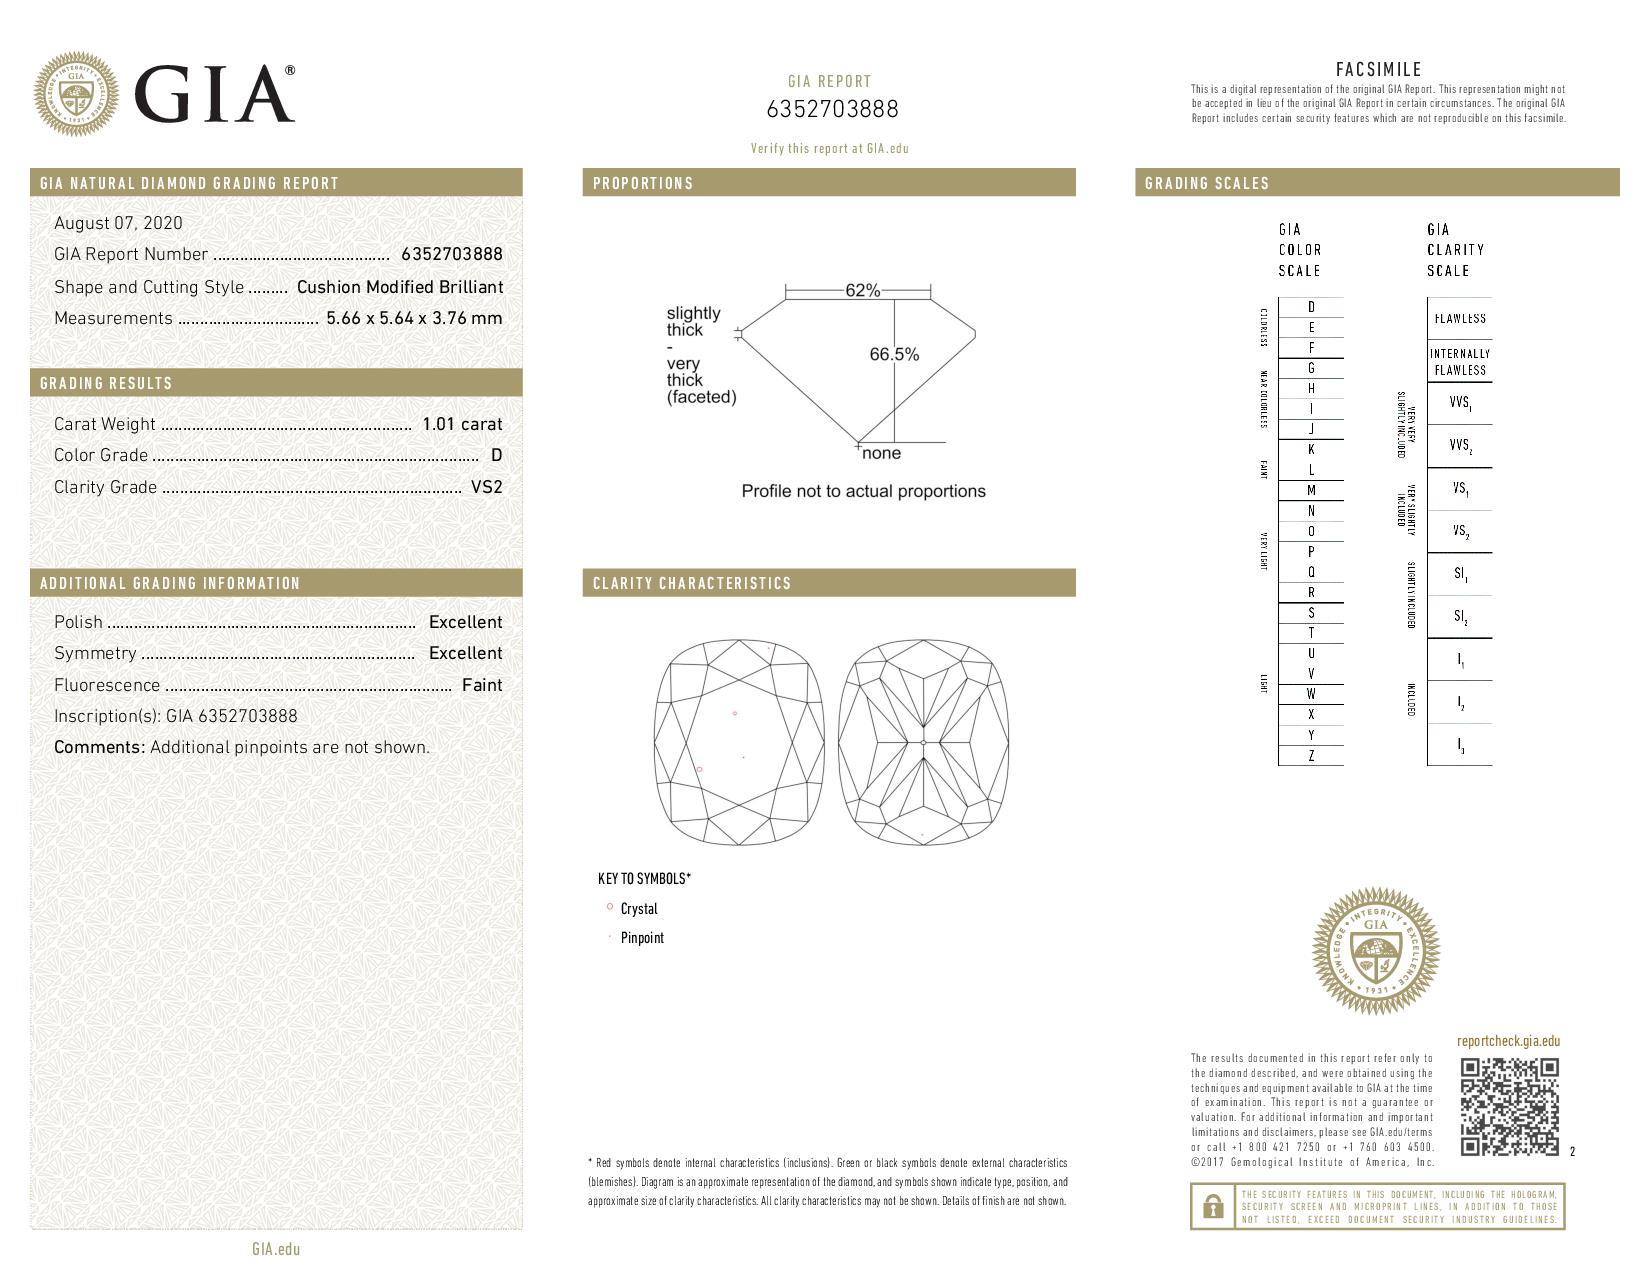 This is a 1.01 carat cushion shape, D color, VS2 clarity natural diamond accompanied by a GIA grading report.